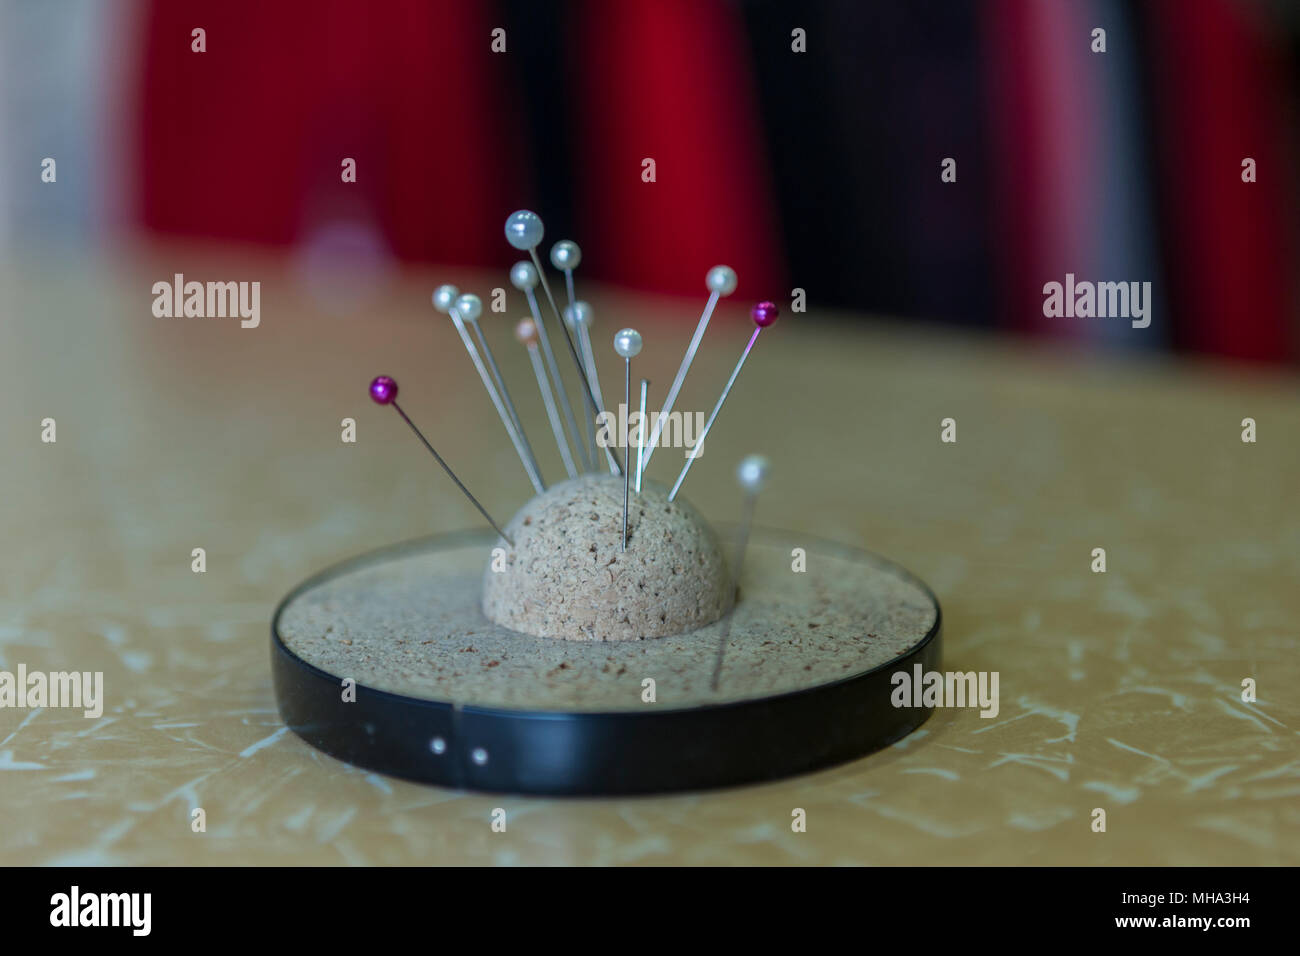 Pins - Stock Image